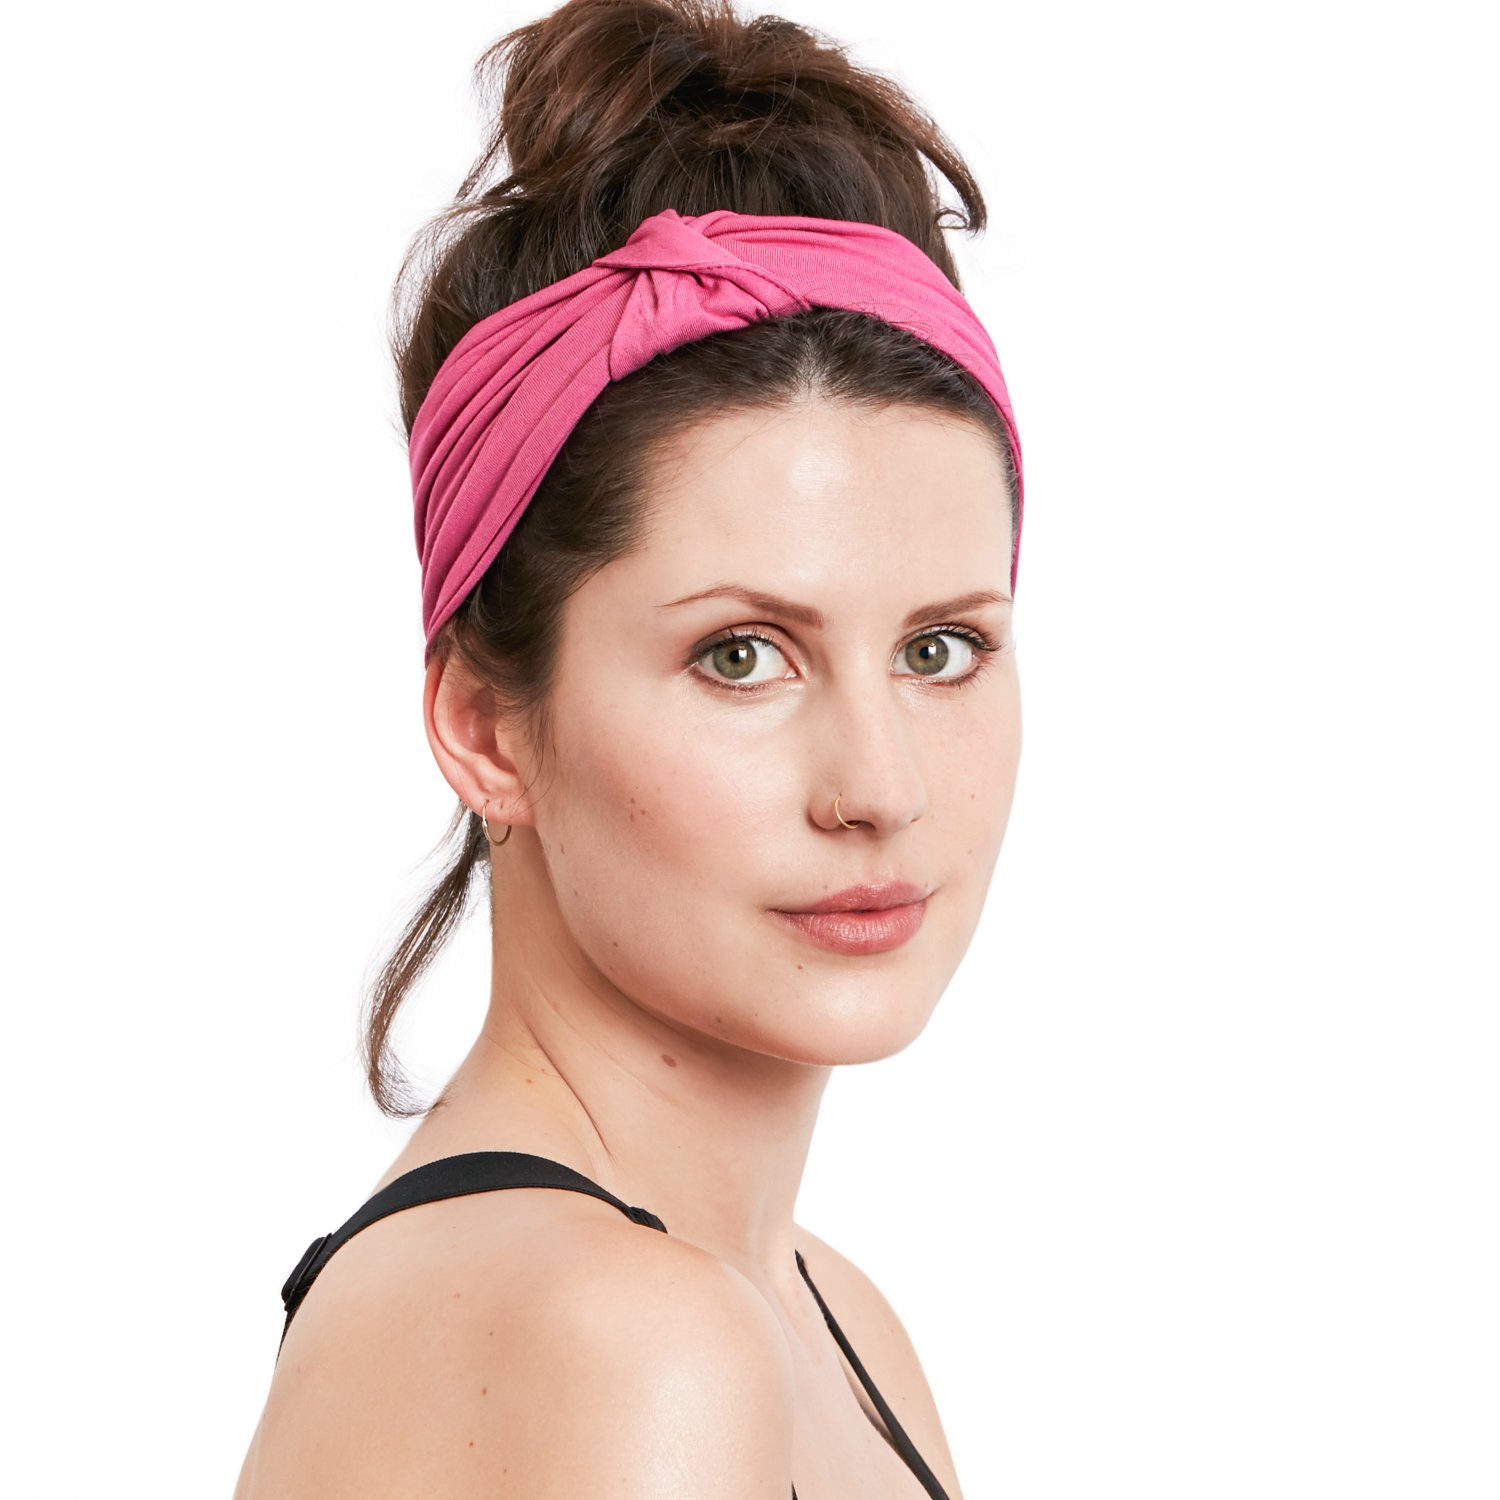 BLOM Original Multi Style Headband. for Women Yoga Fashion Workout Running  Athletic Travel. Wear Wide Turban Thick Knotted + More. 0335ded5394